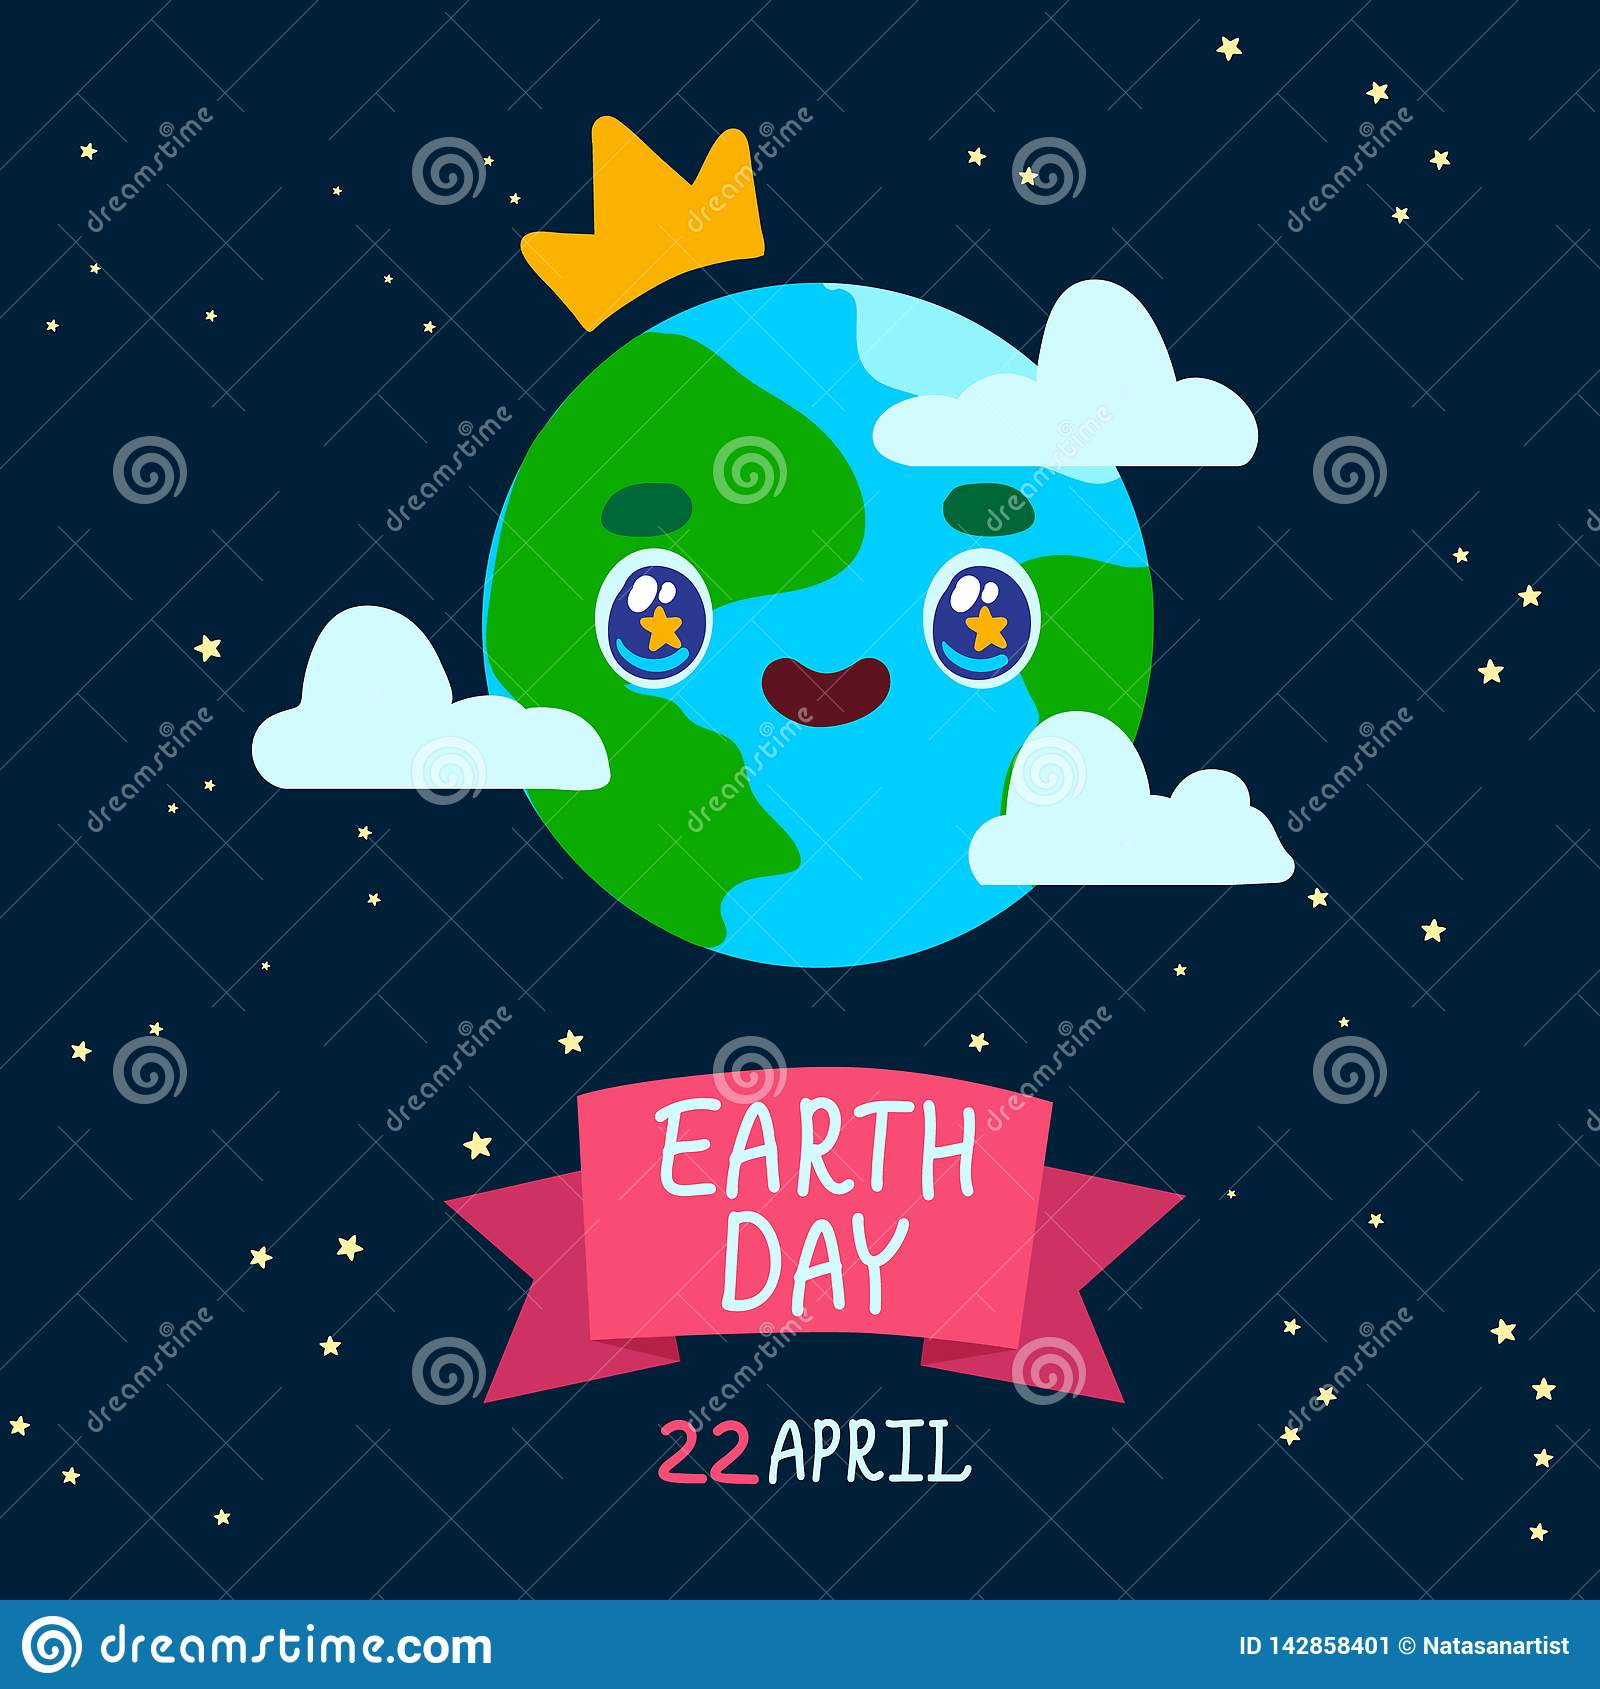 Happy Earth day card. Earth Day Cartoon poster.